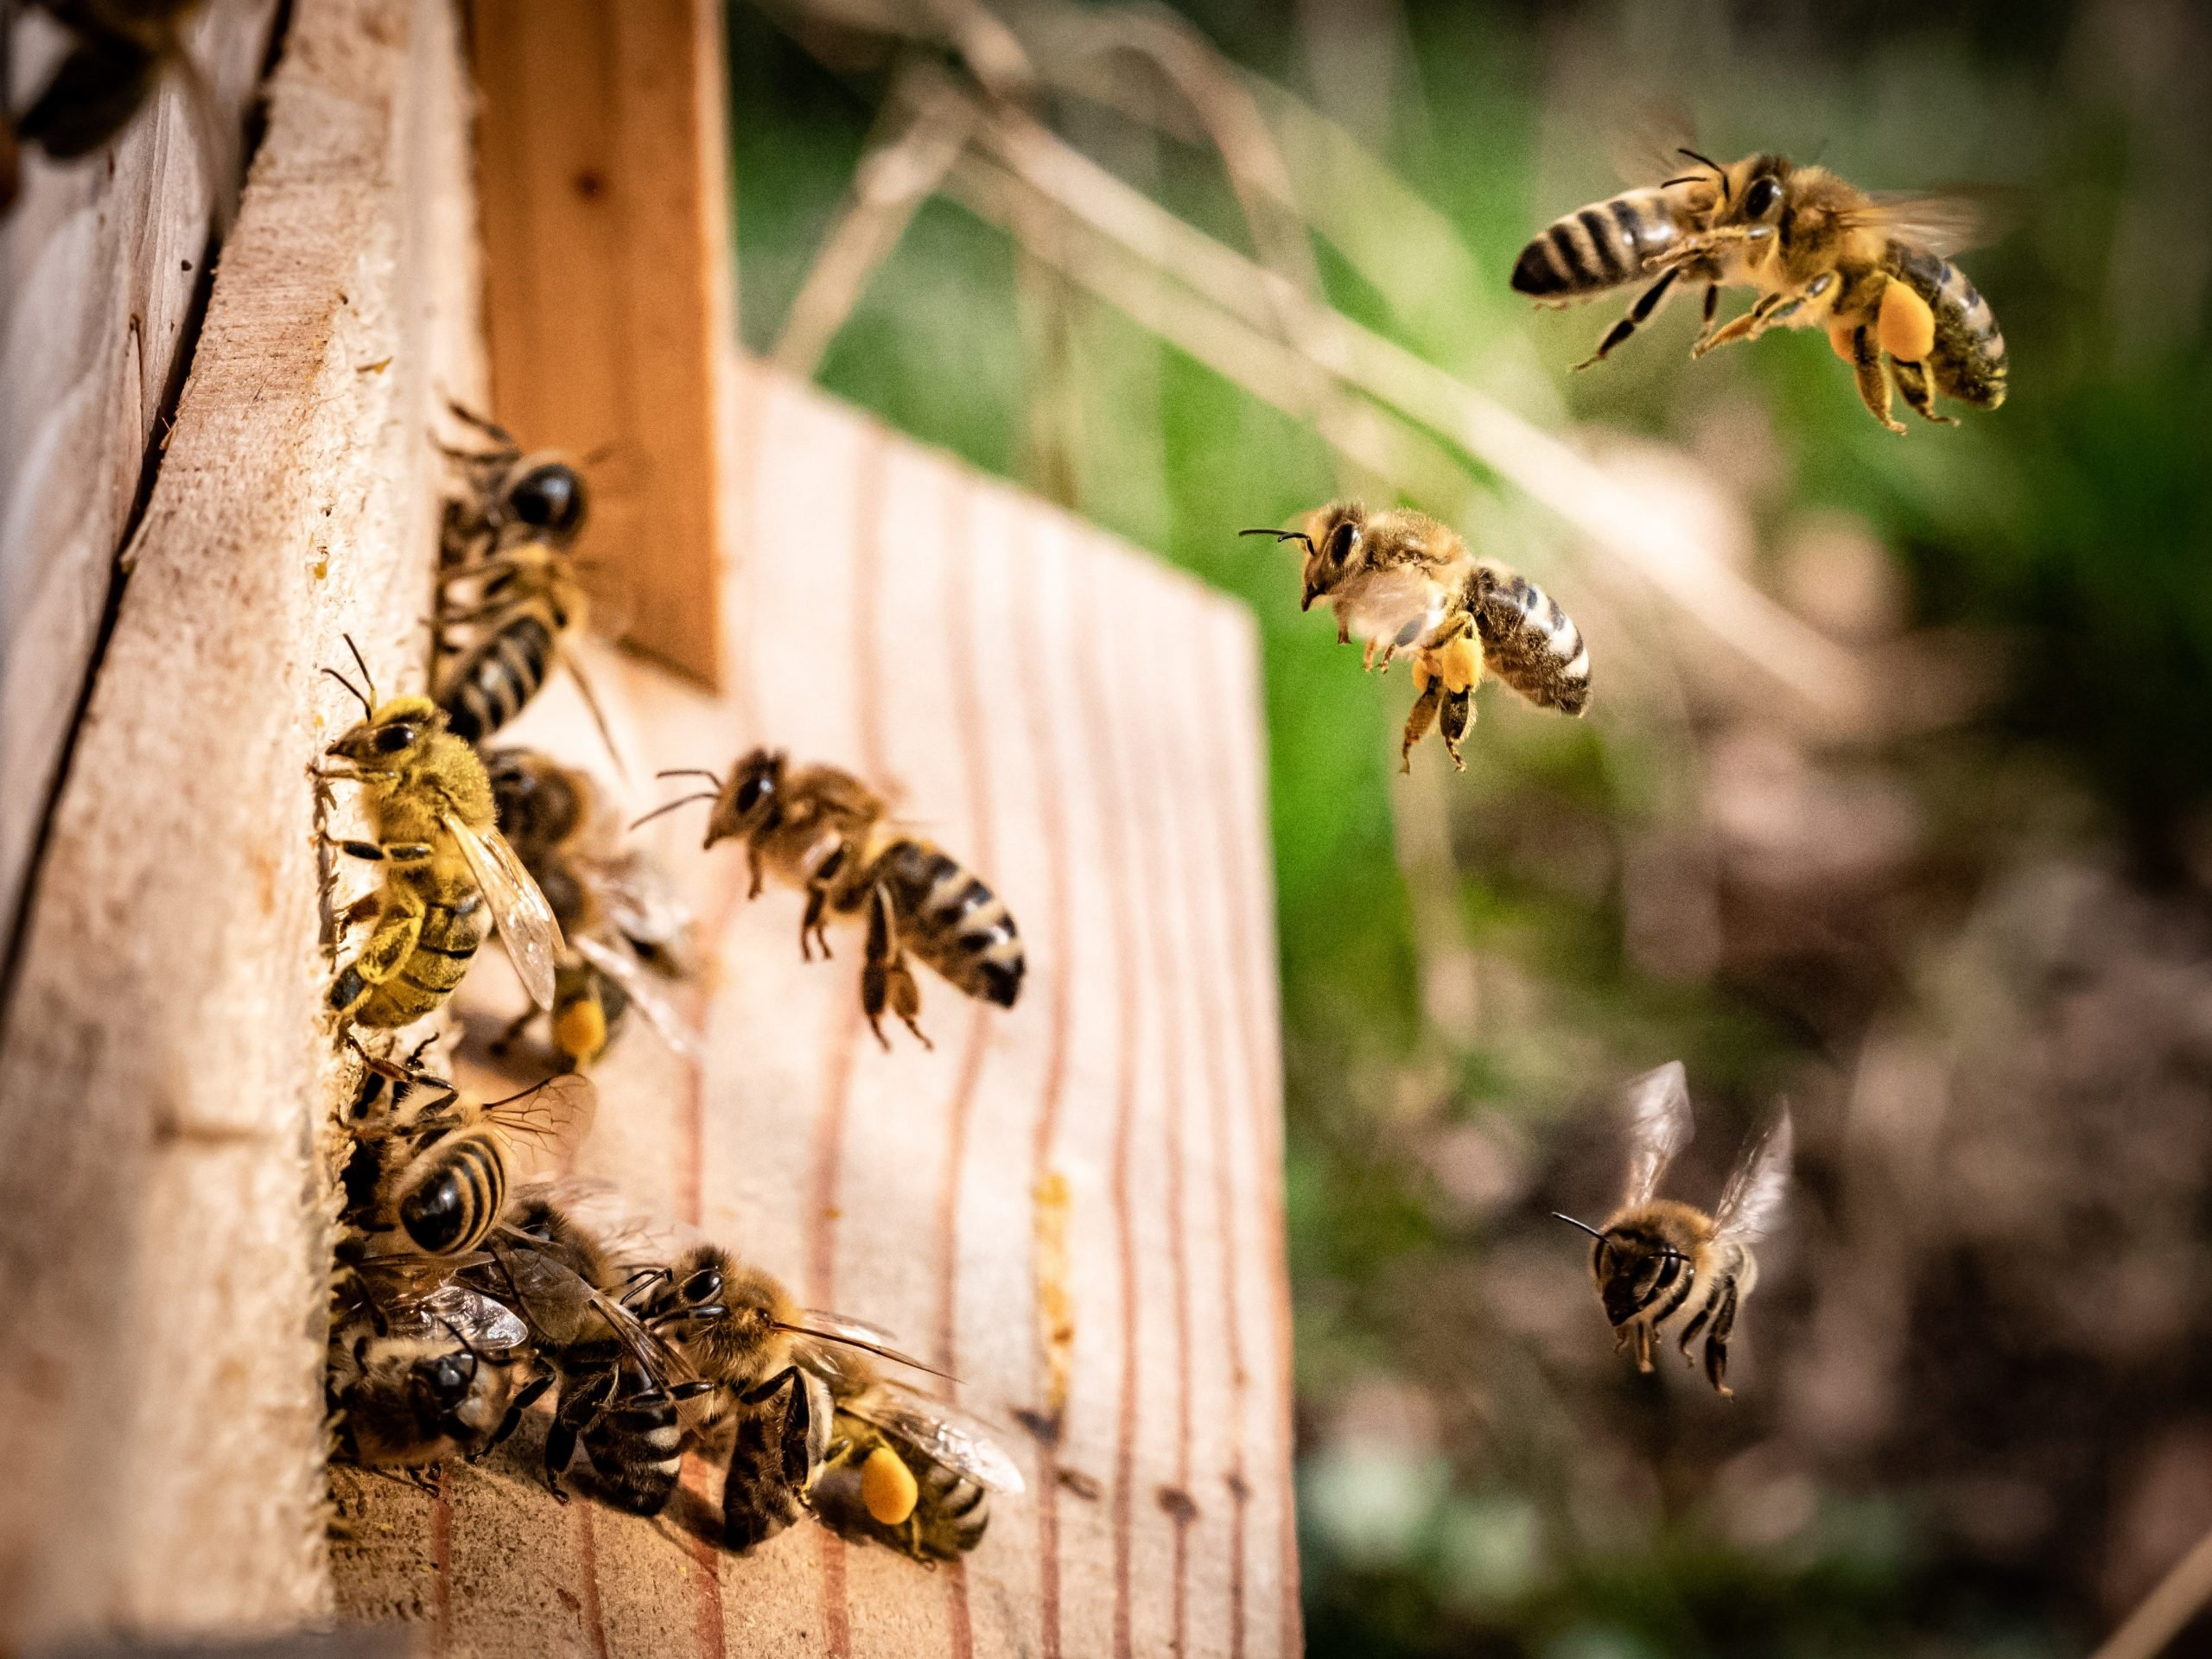 A beehive at their home starting to fly